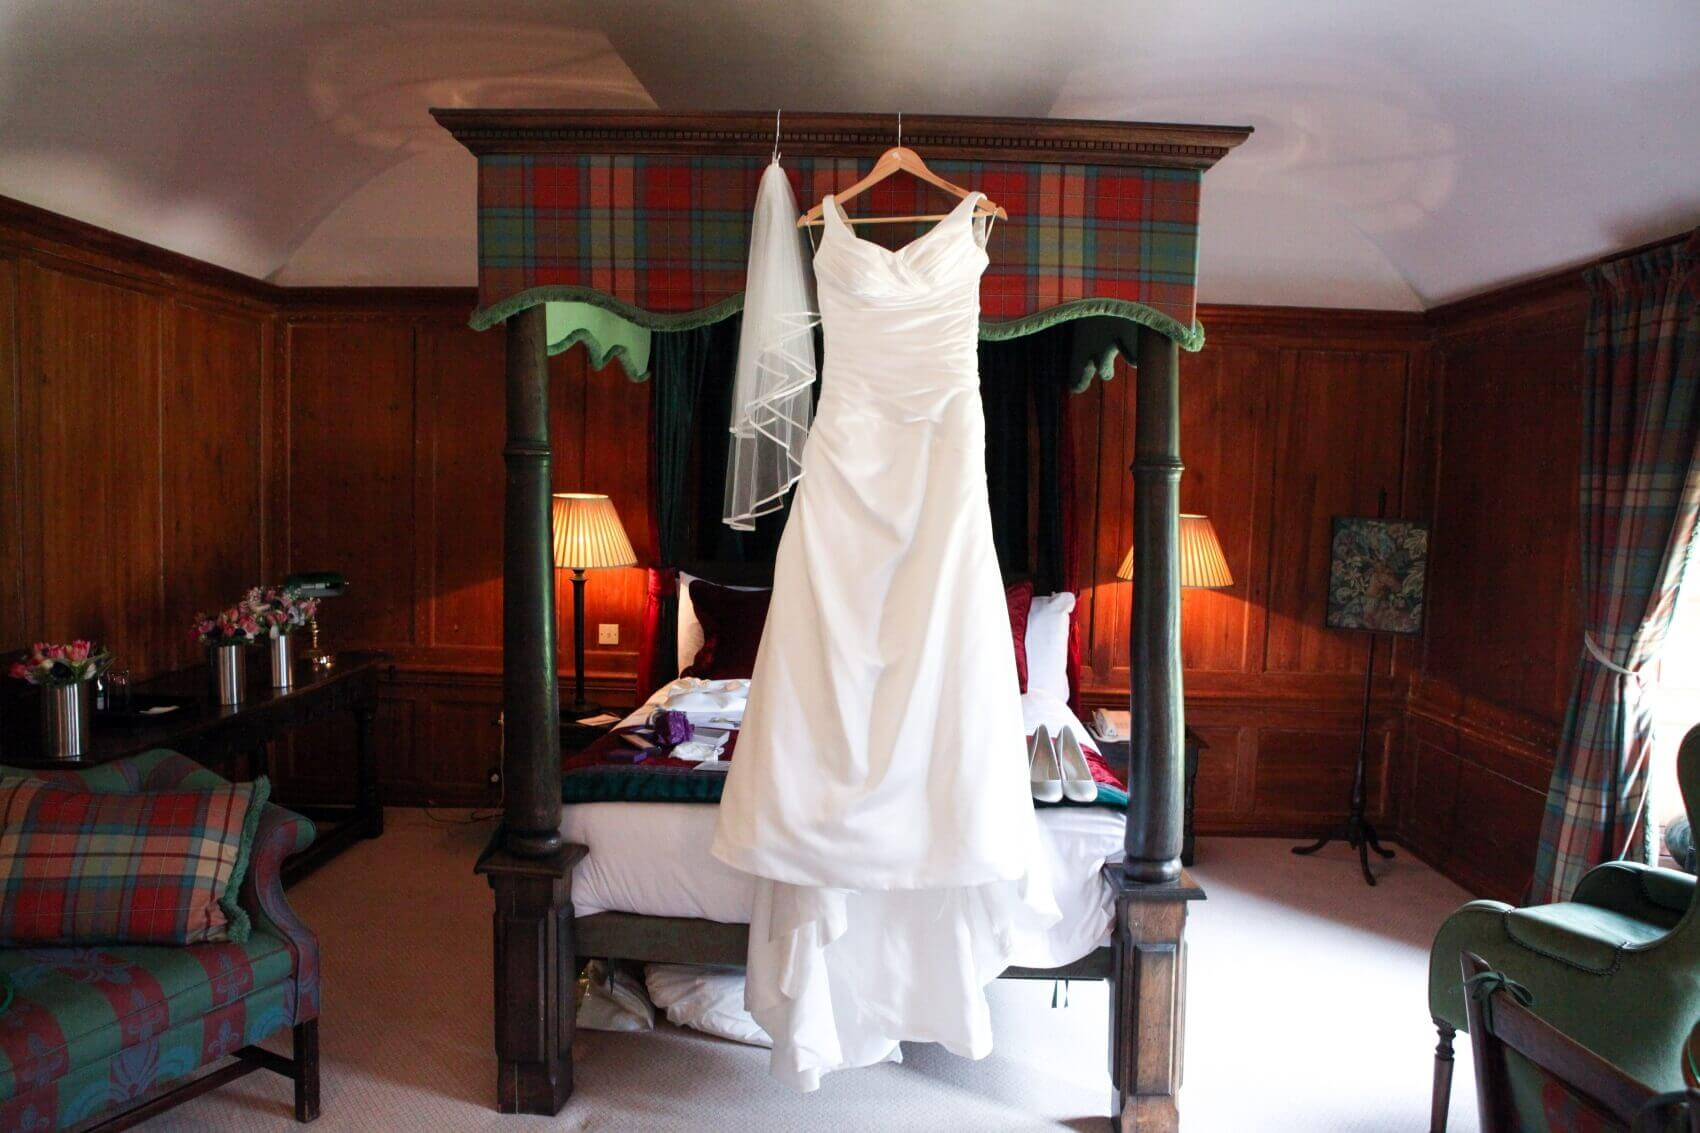 Wedding dress hanging the bed at Flitwick Manor wedding venue